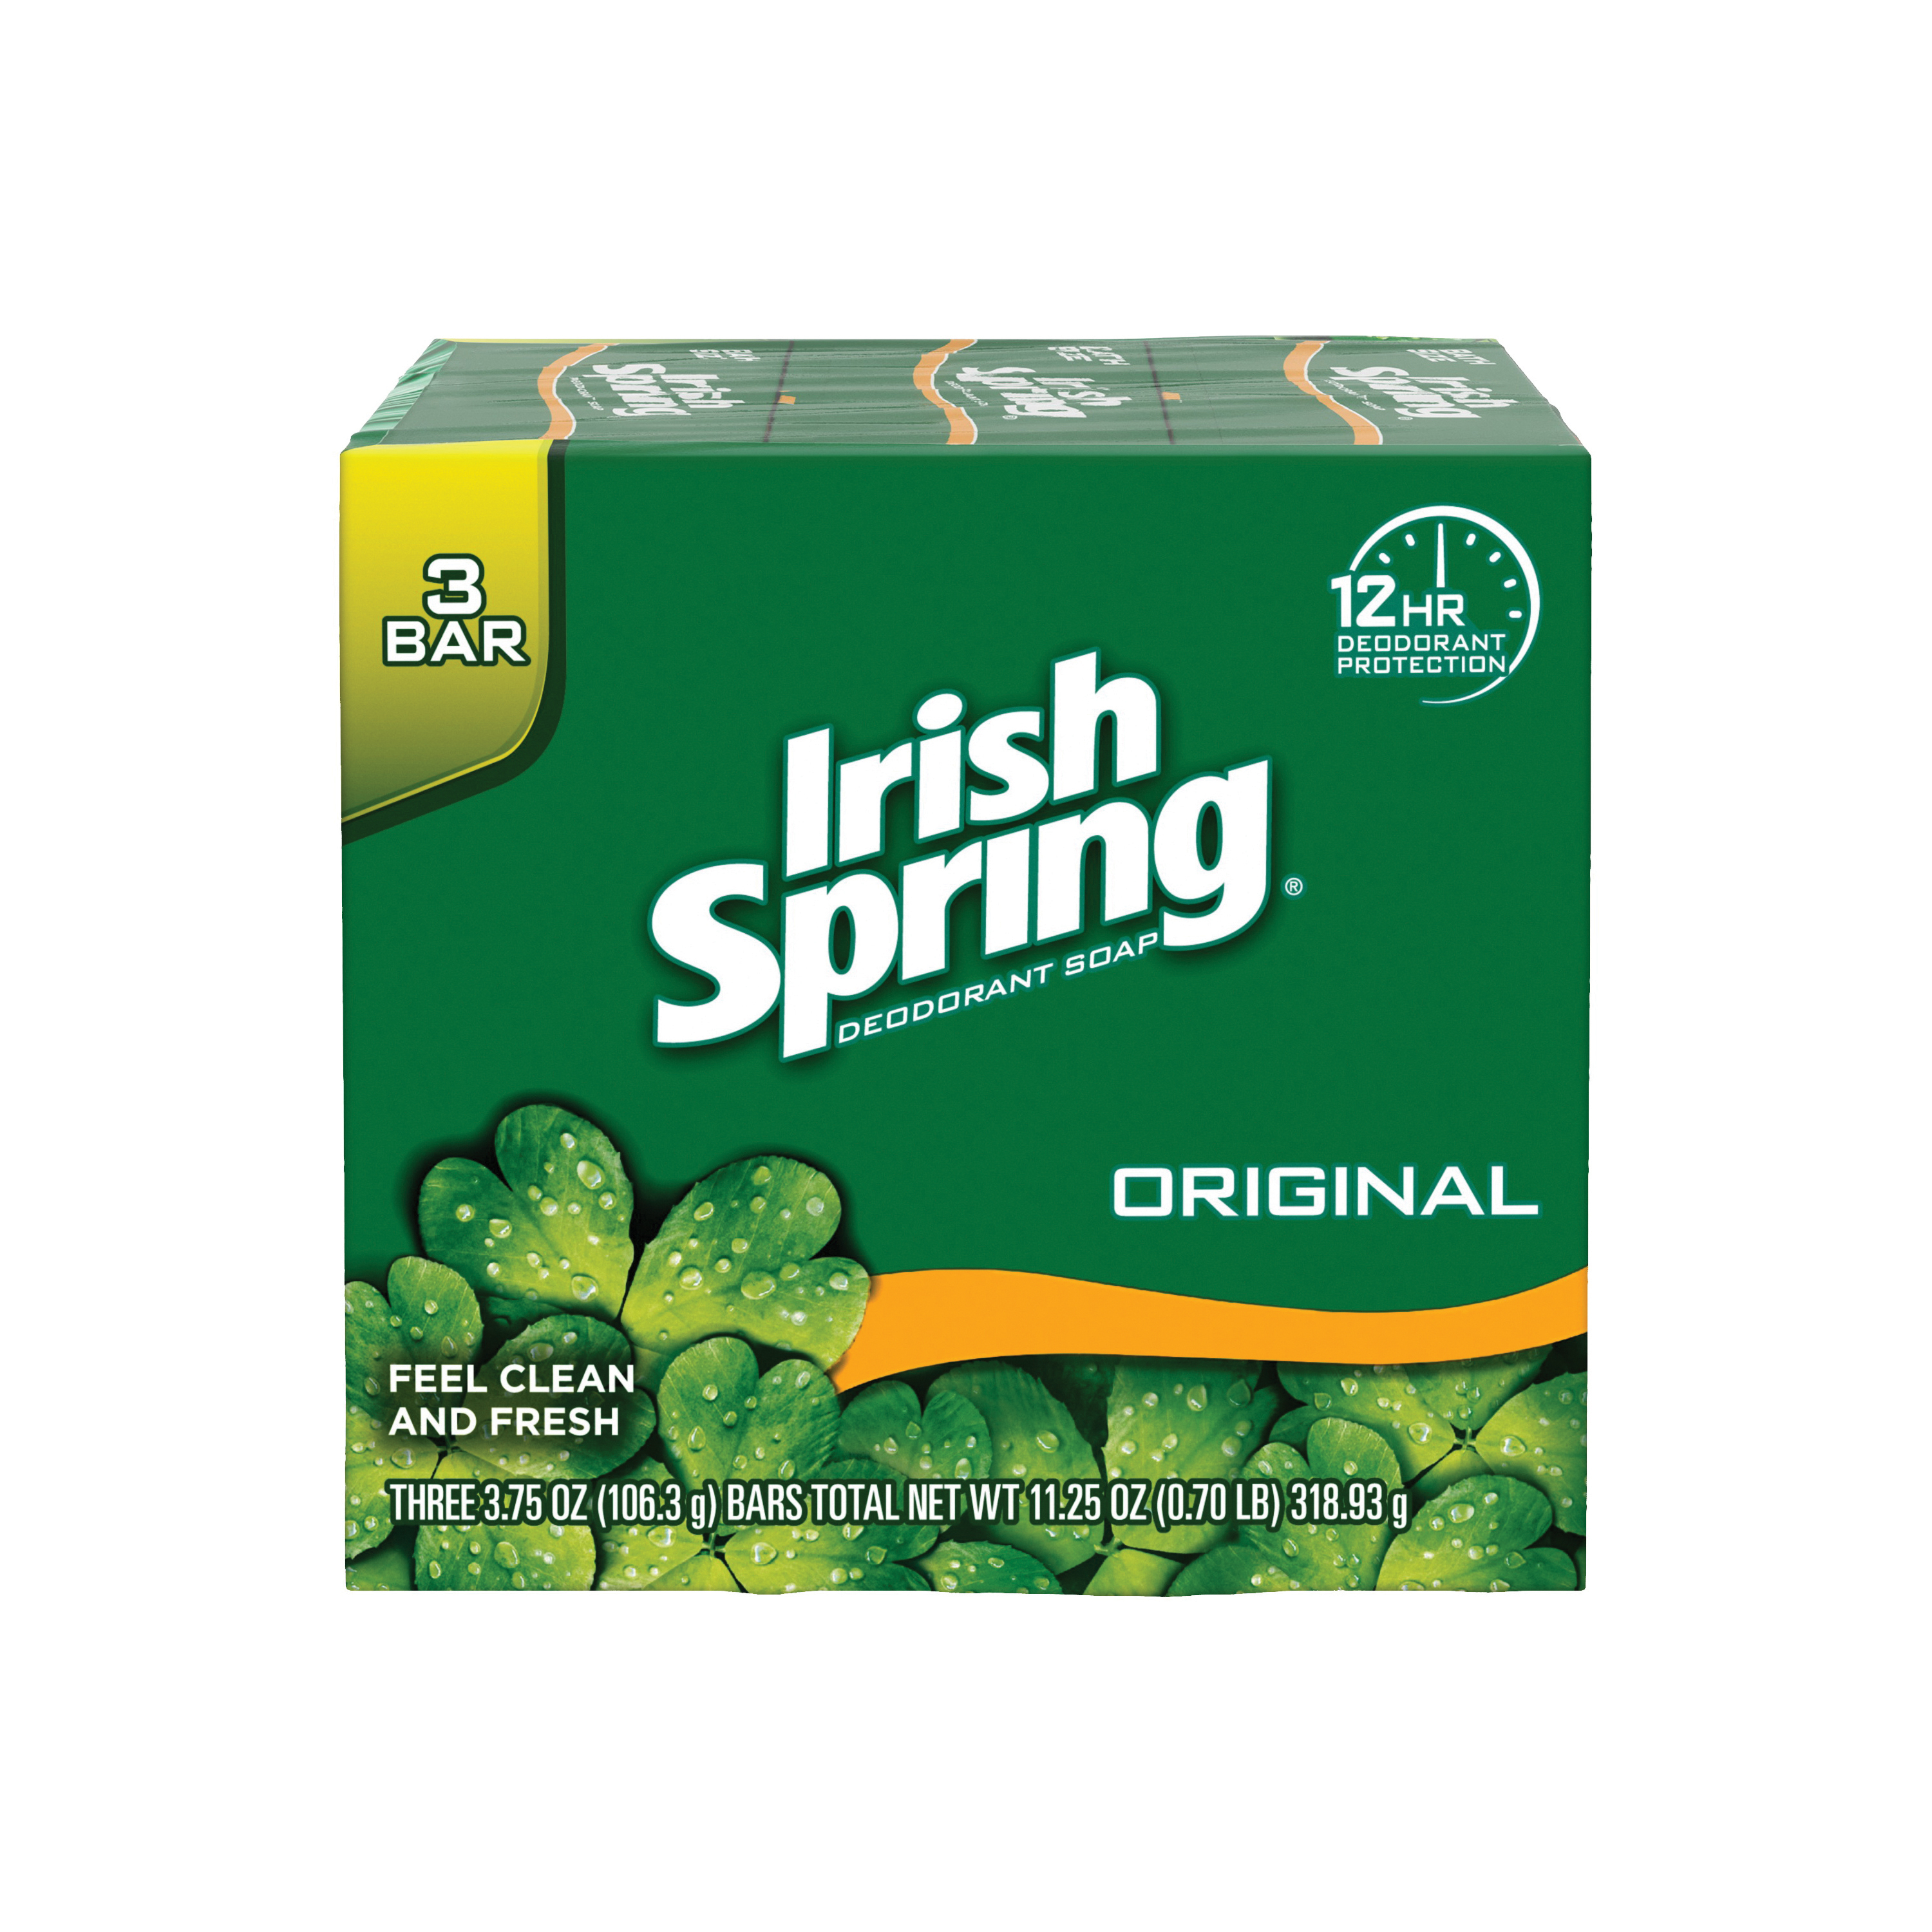 Picture of Irish Spring 14177 Bar Soap Green, Green, Clean Fresh, 3.75 oz Package